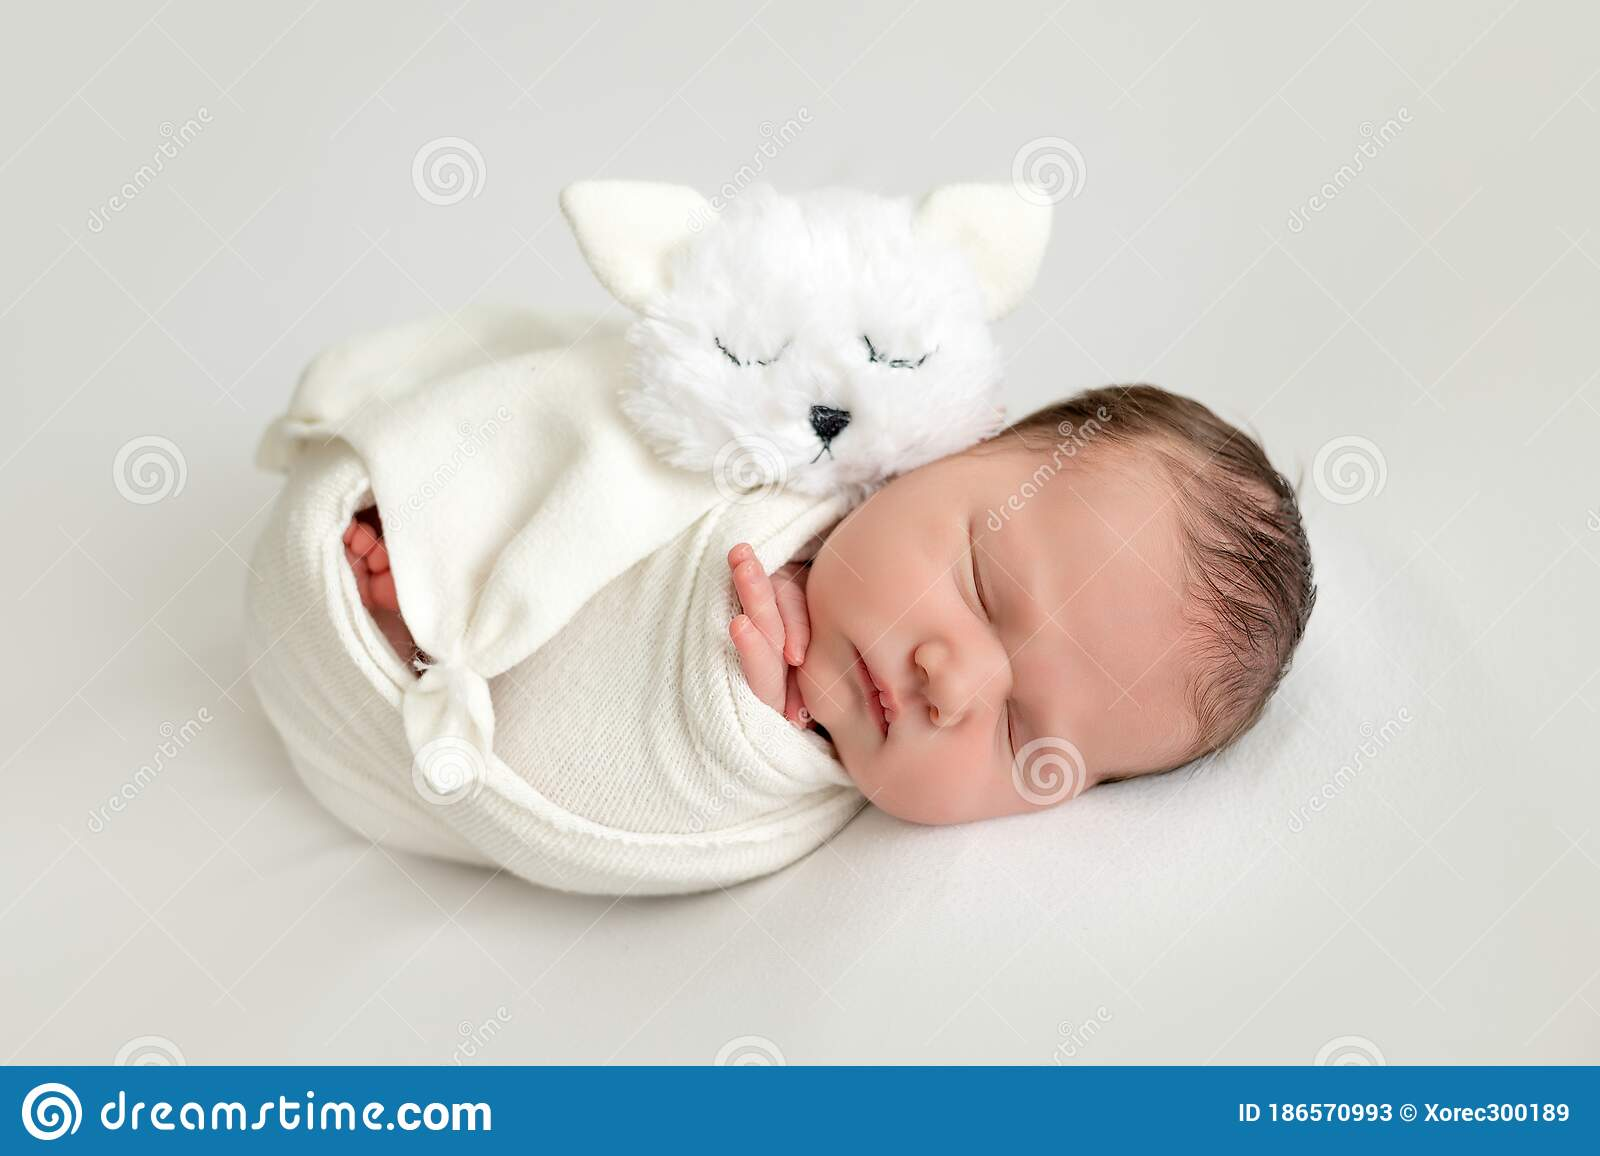 Sweet Newborn Baby With A Toy Cat On A White Background Swaddle The Baby Place For Text Stock Image Image Of Newborn Childhood 186570993